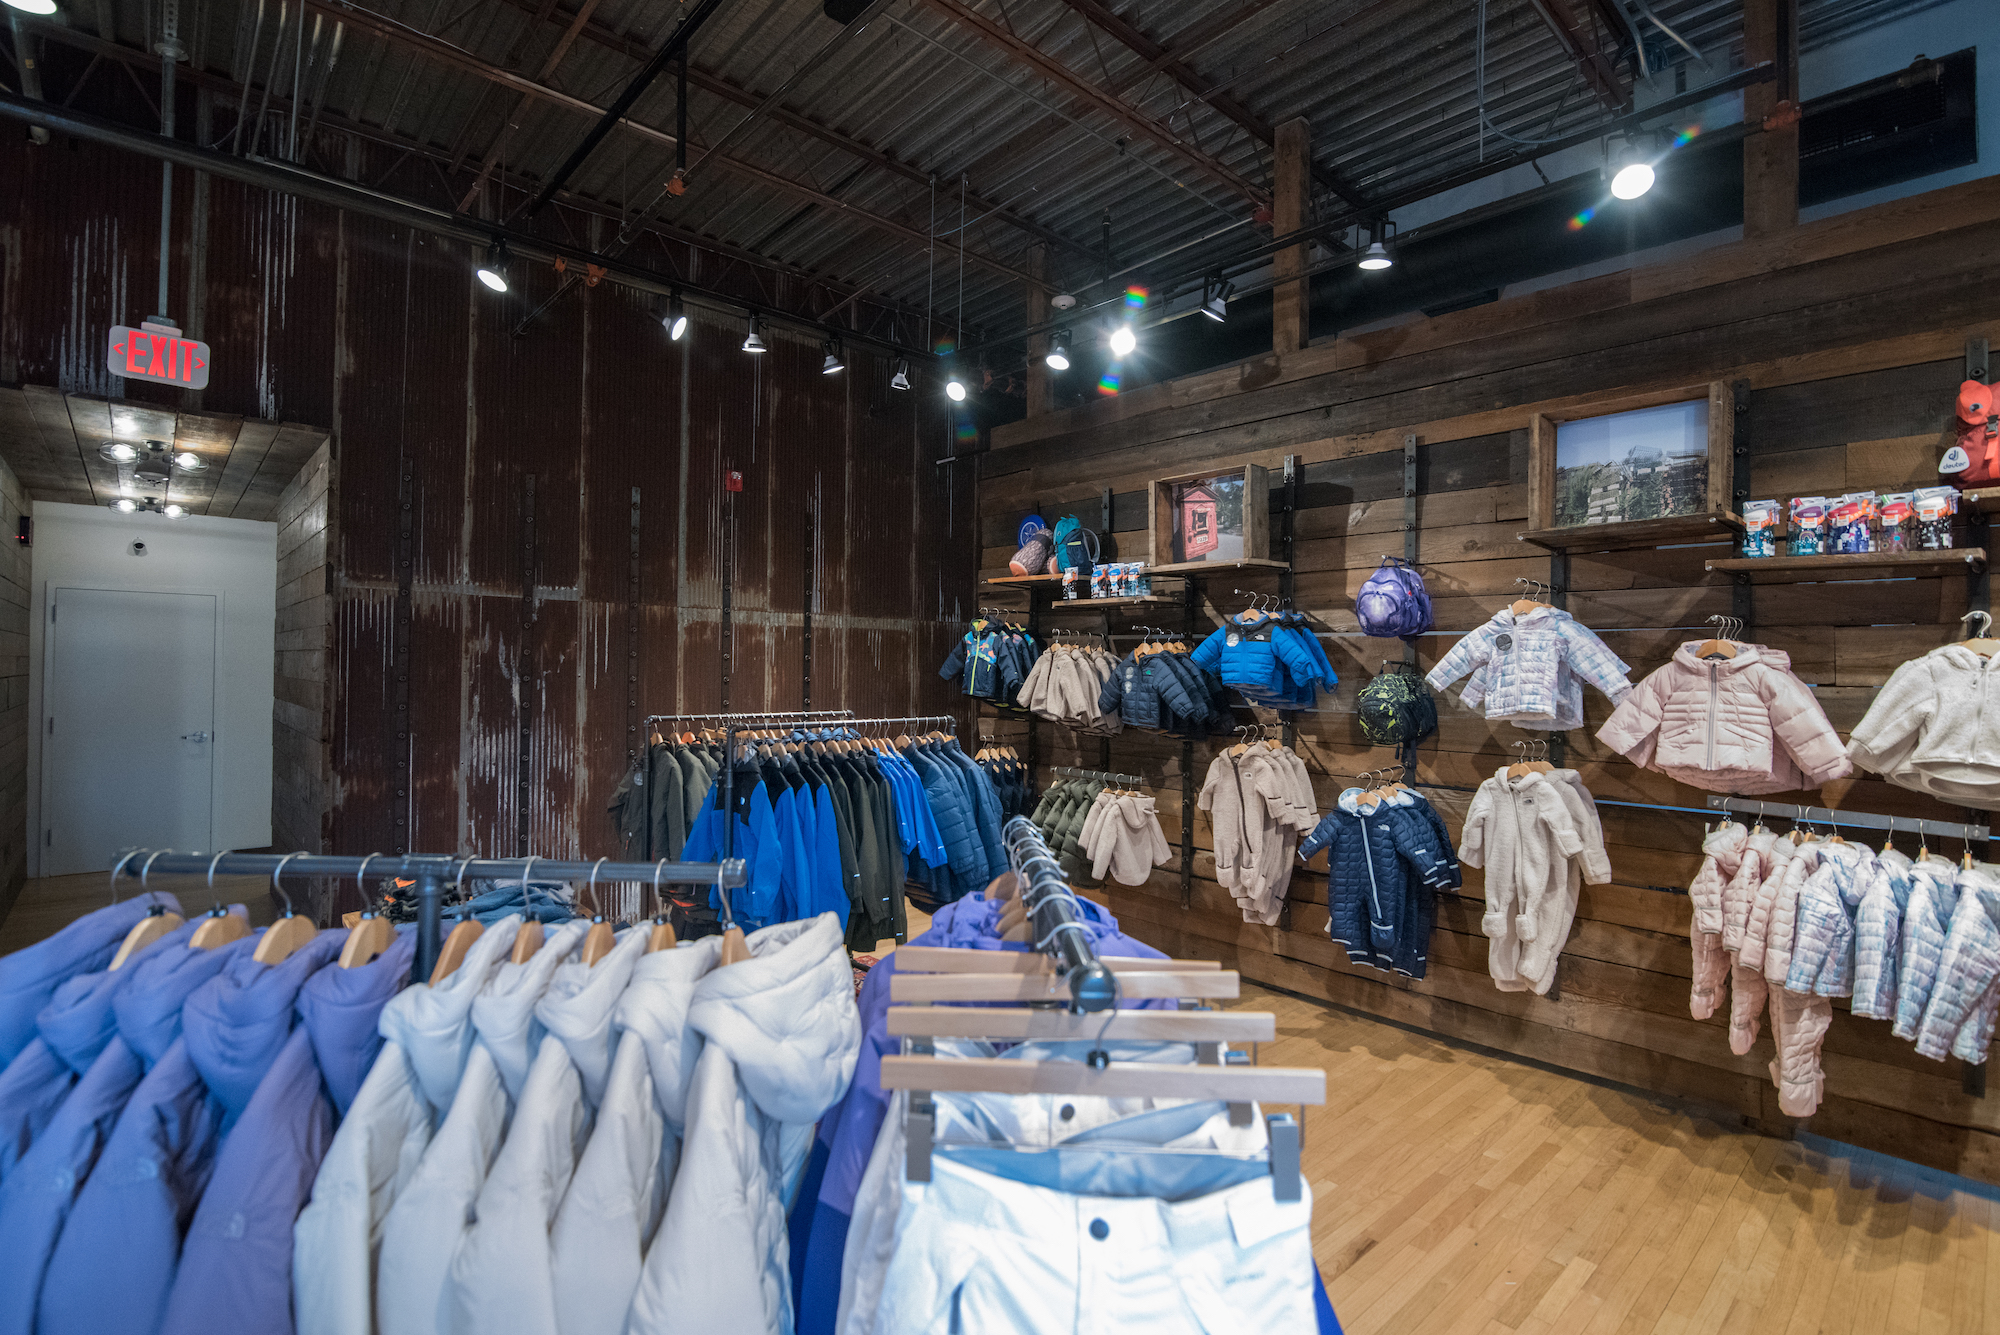 Outerwear retail store Denali in Providence, Rhode Island, featuring vintage wood sourced by Rousseau Reclaimed Lumber & Flooring